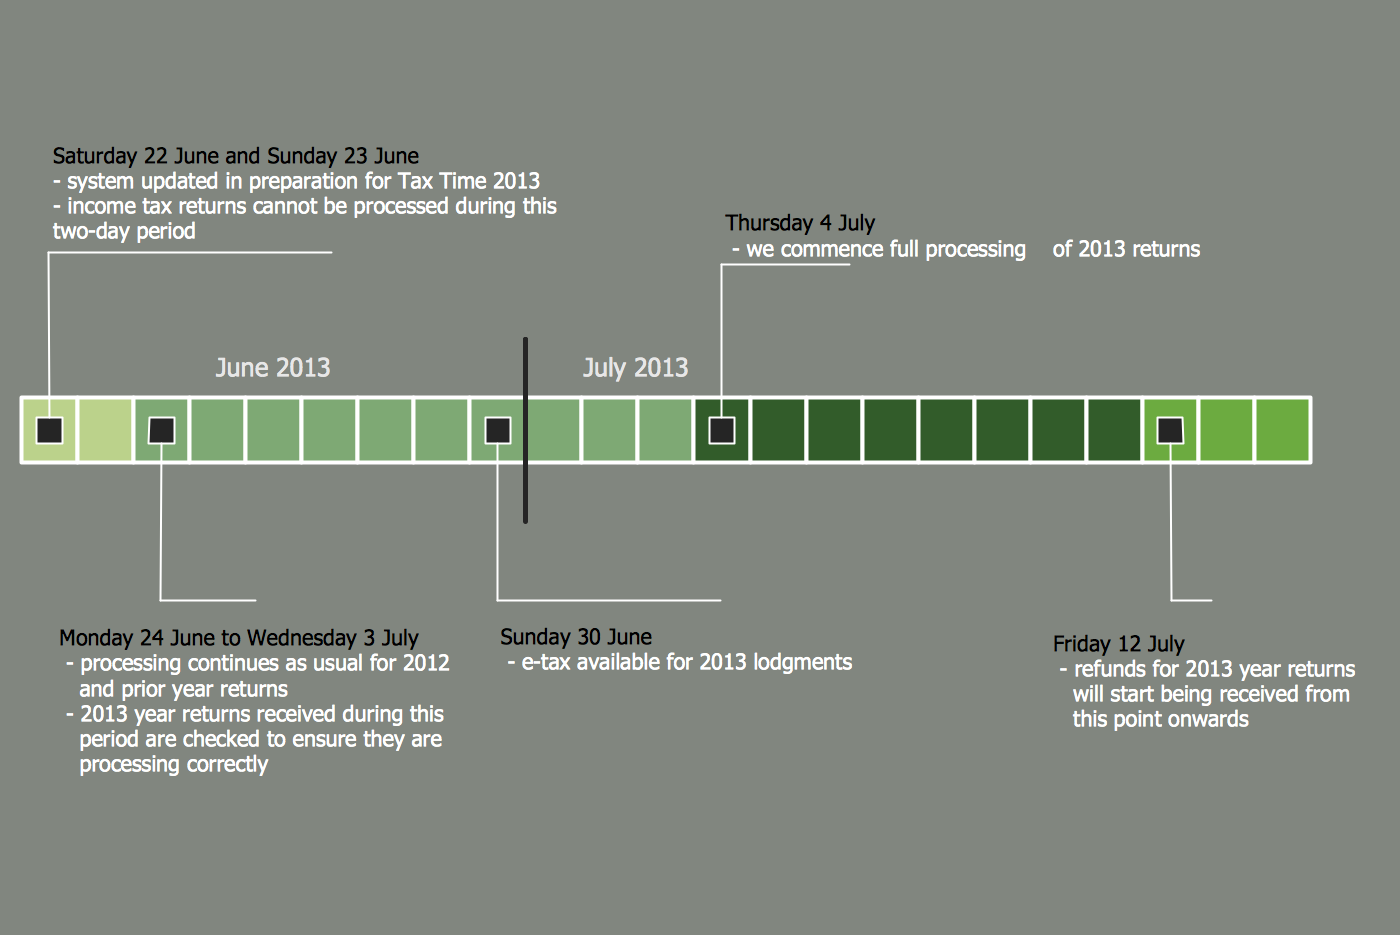 Tax Time 2013 - System availability and processing timeline